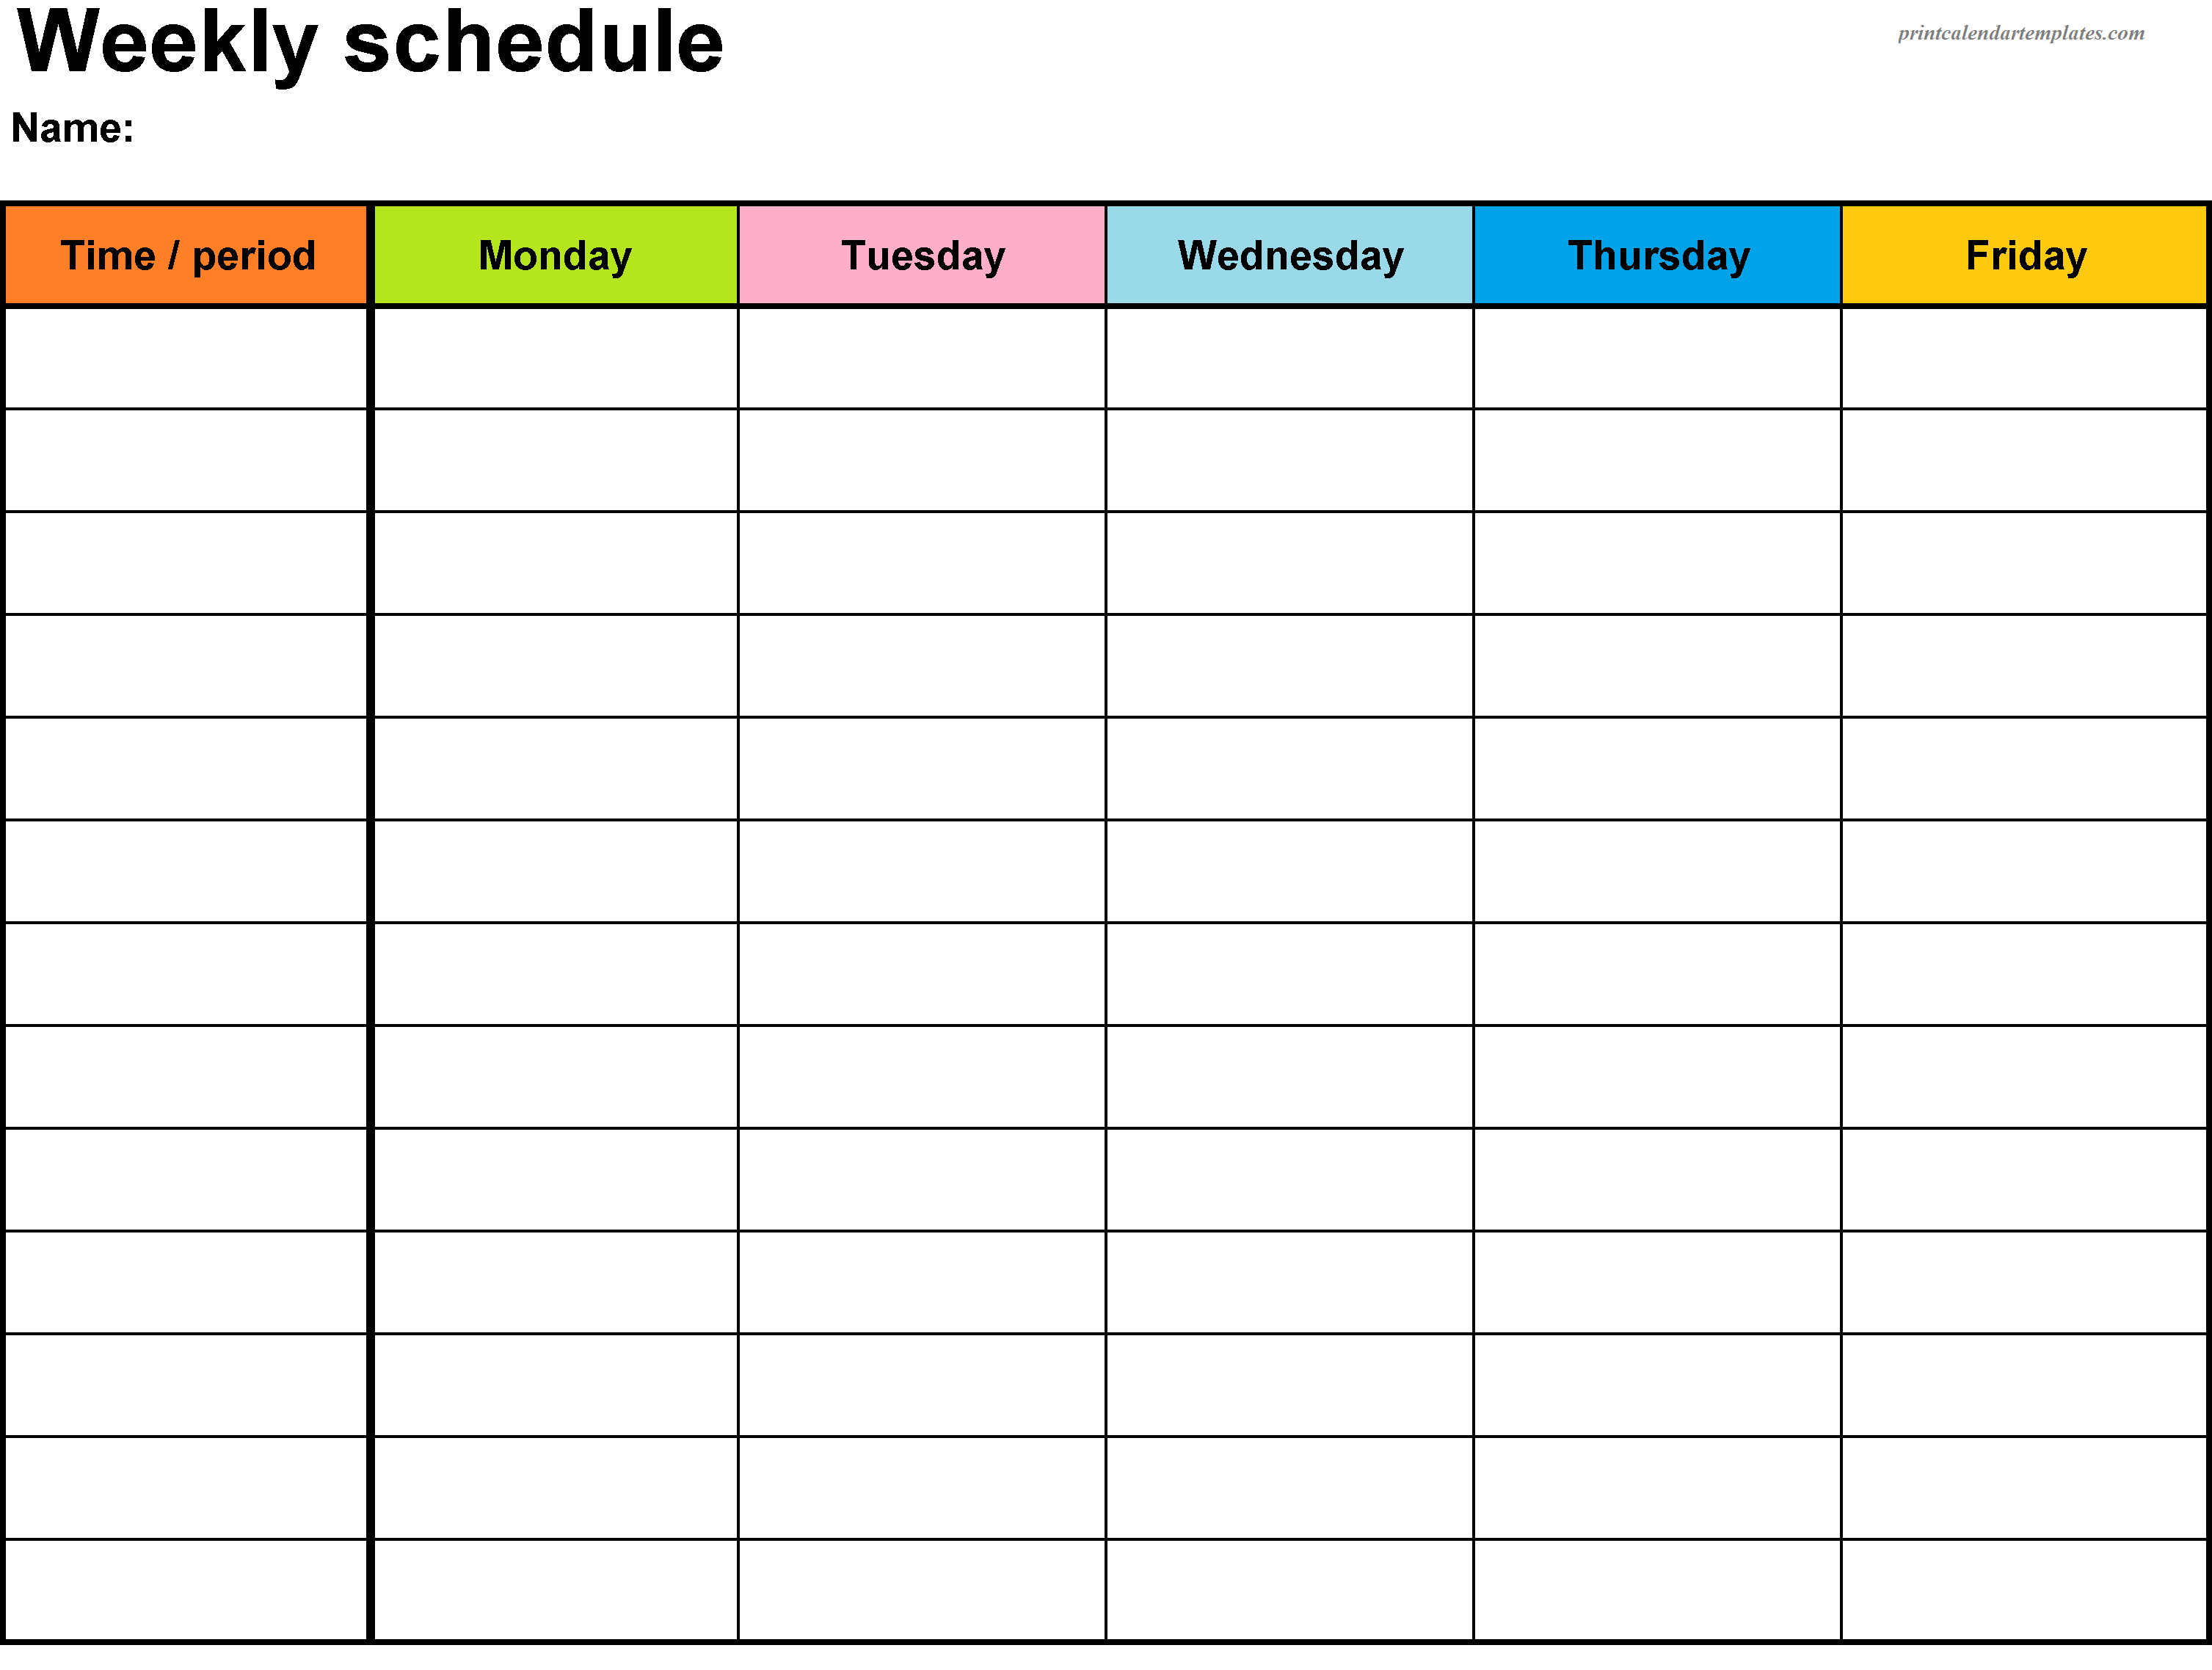 Printable Weekly Planner Template | Weekly Planner Printable inside Weekly Calendar Template With Time Slots